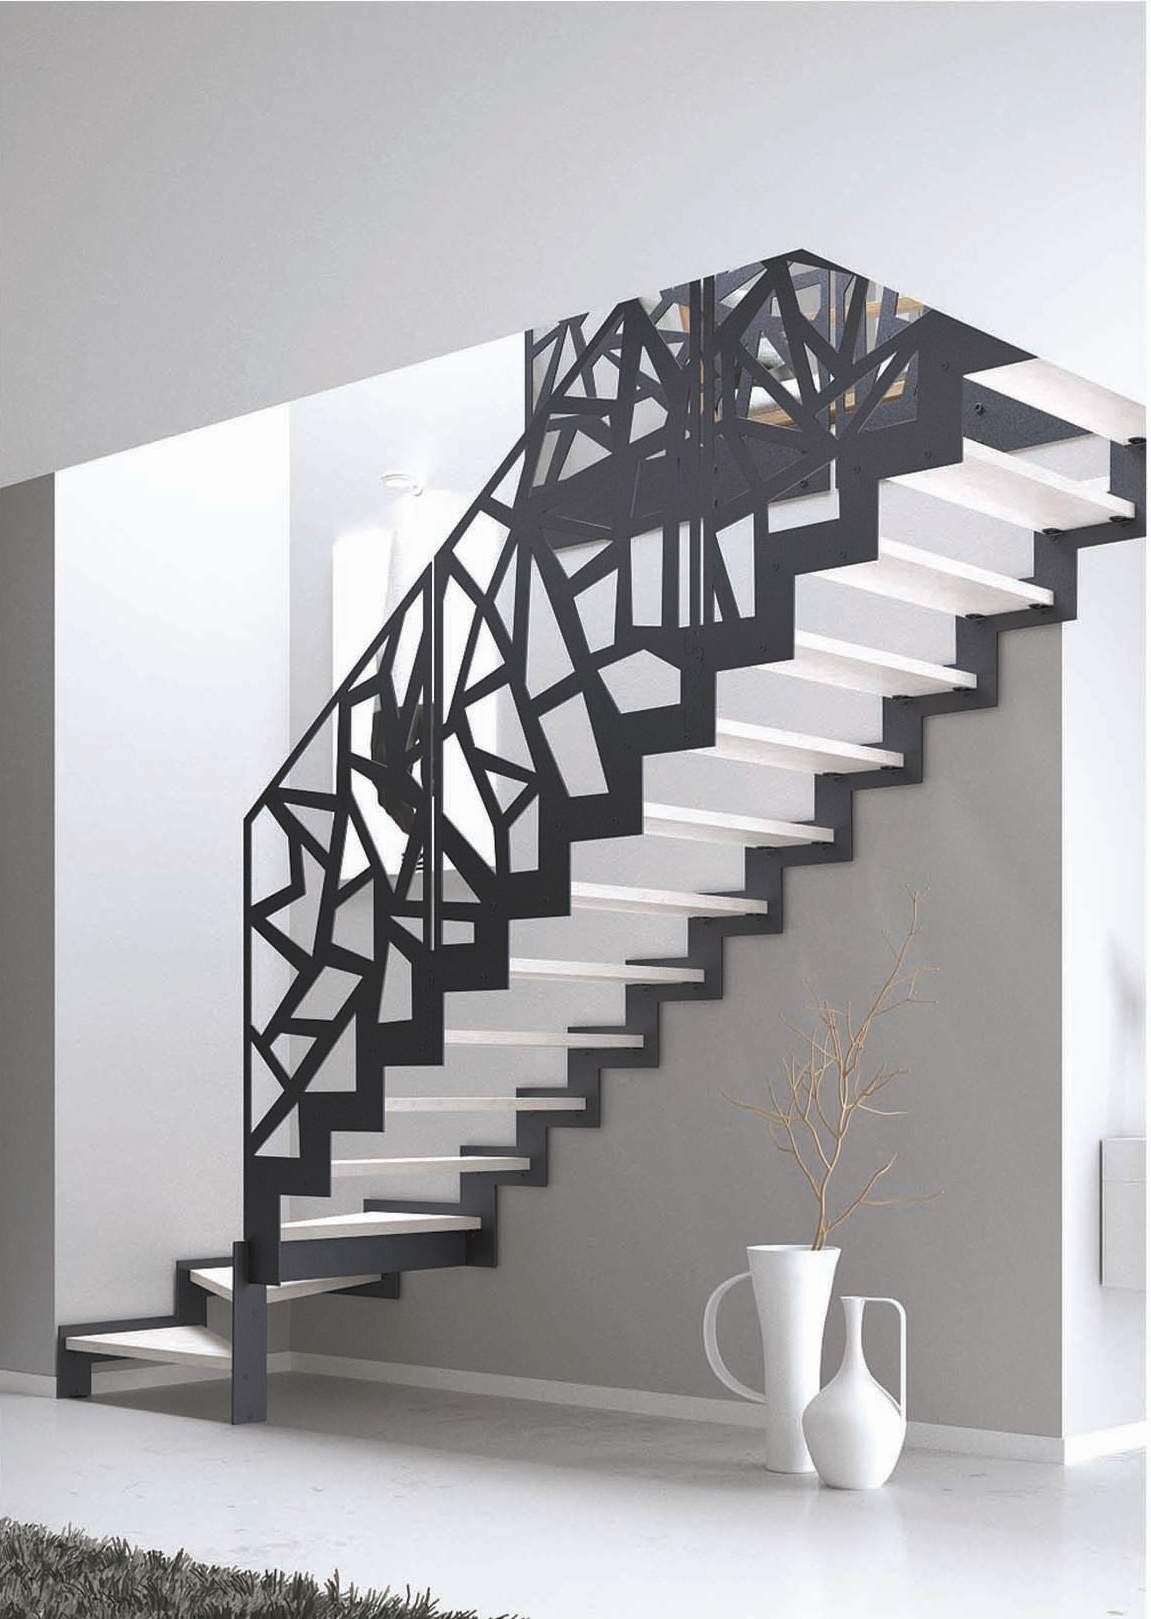 scara interioara contemporana cu balustrada metalica design decorativ